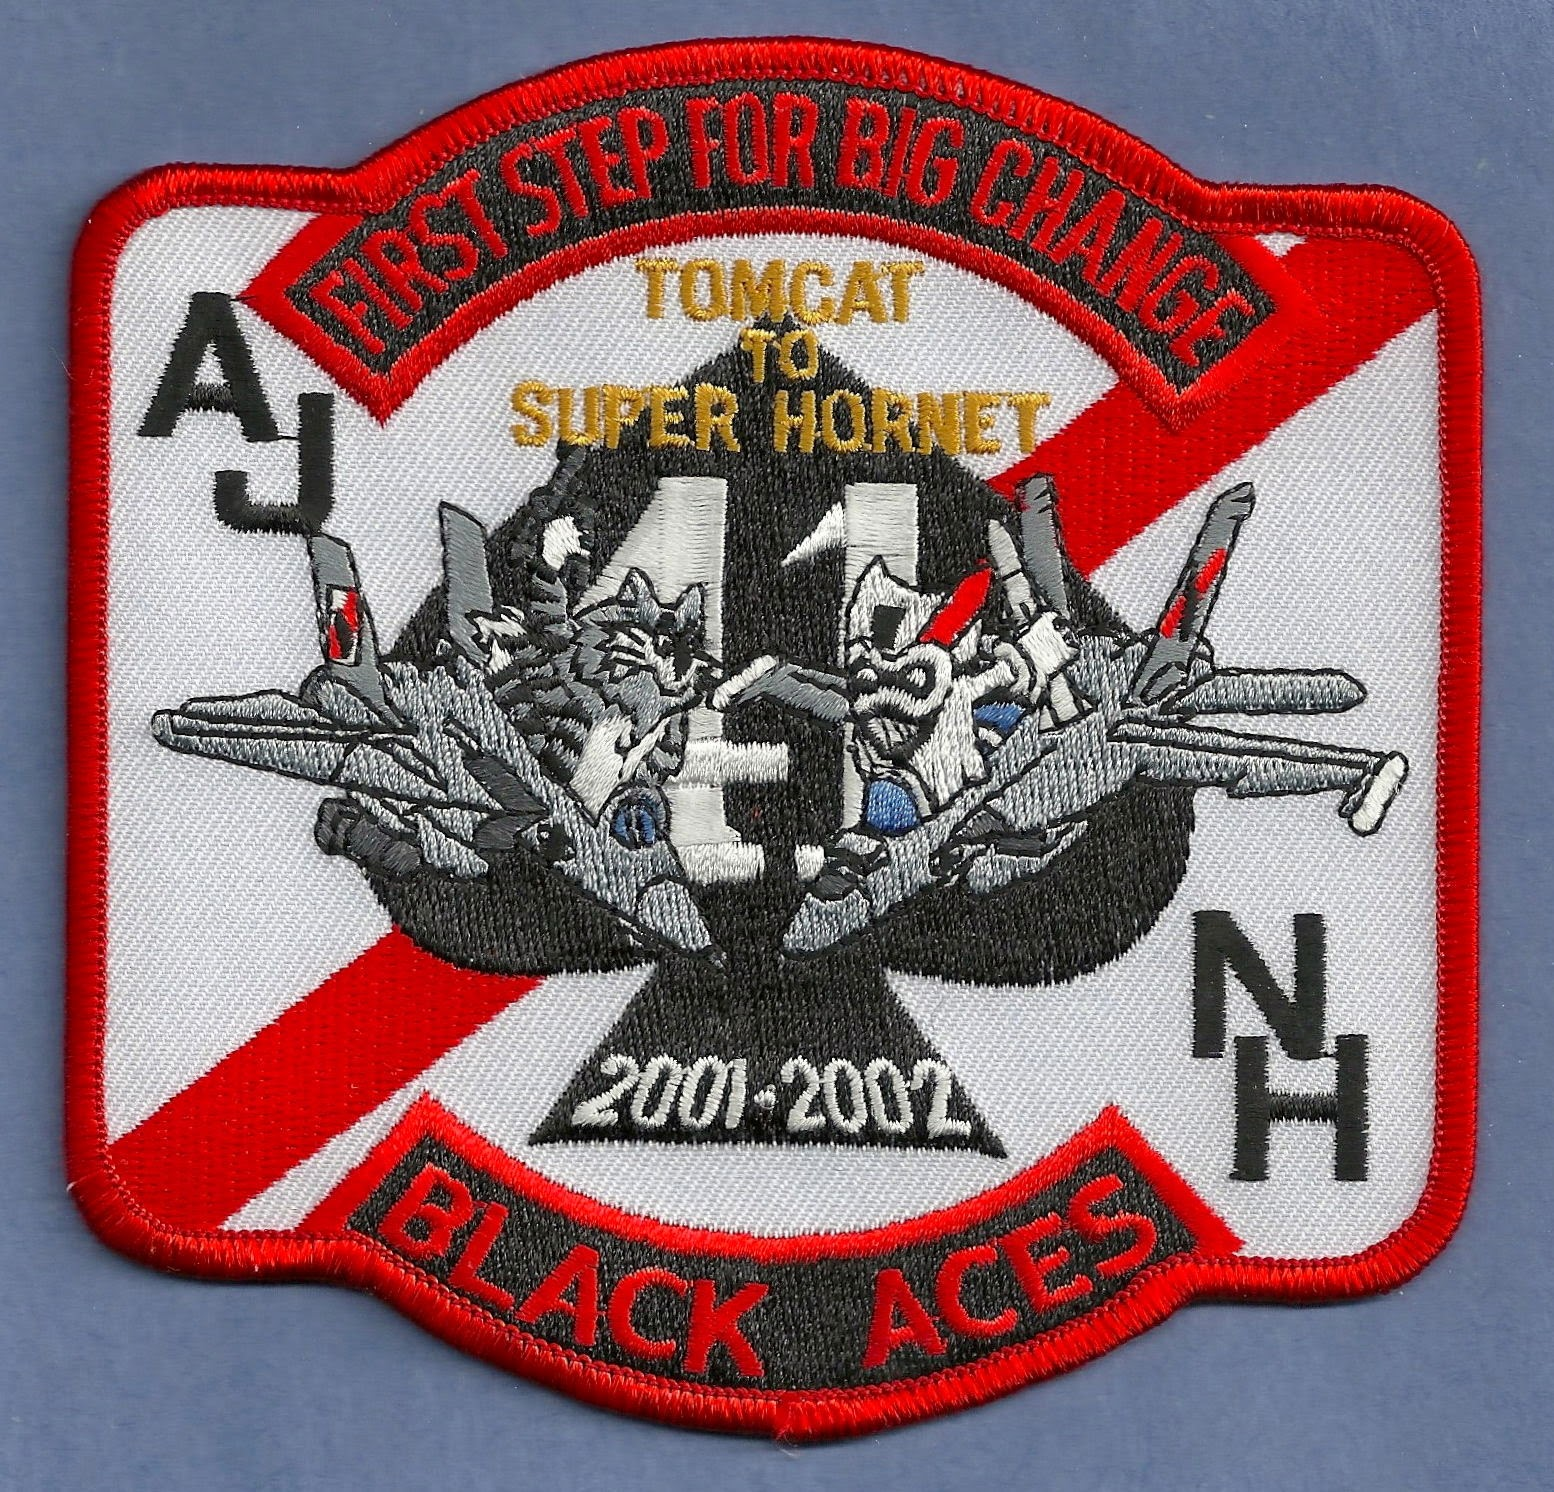 VF-41 BLACK ACES F-14 NAVY FIGHTER SQUADRON 2001-2002 AIRCRAFT PATCH